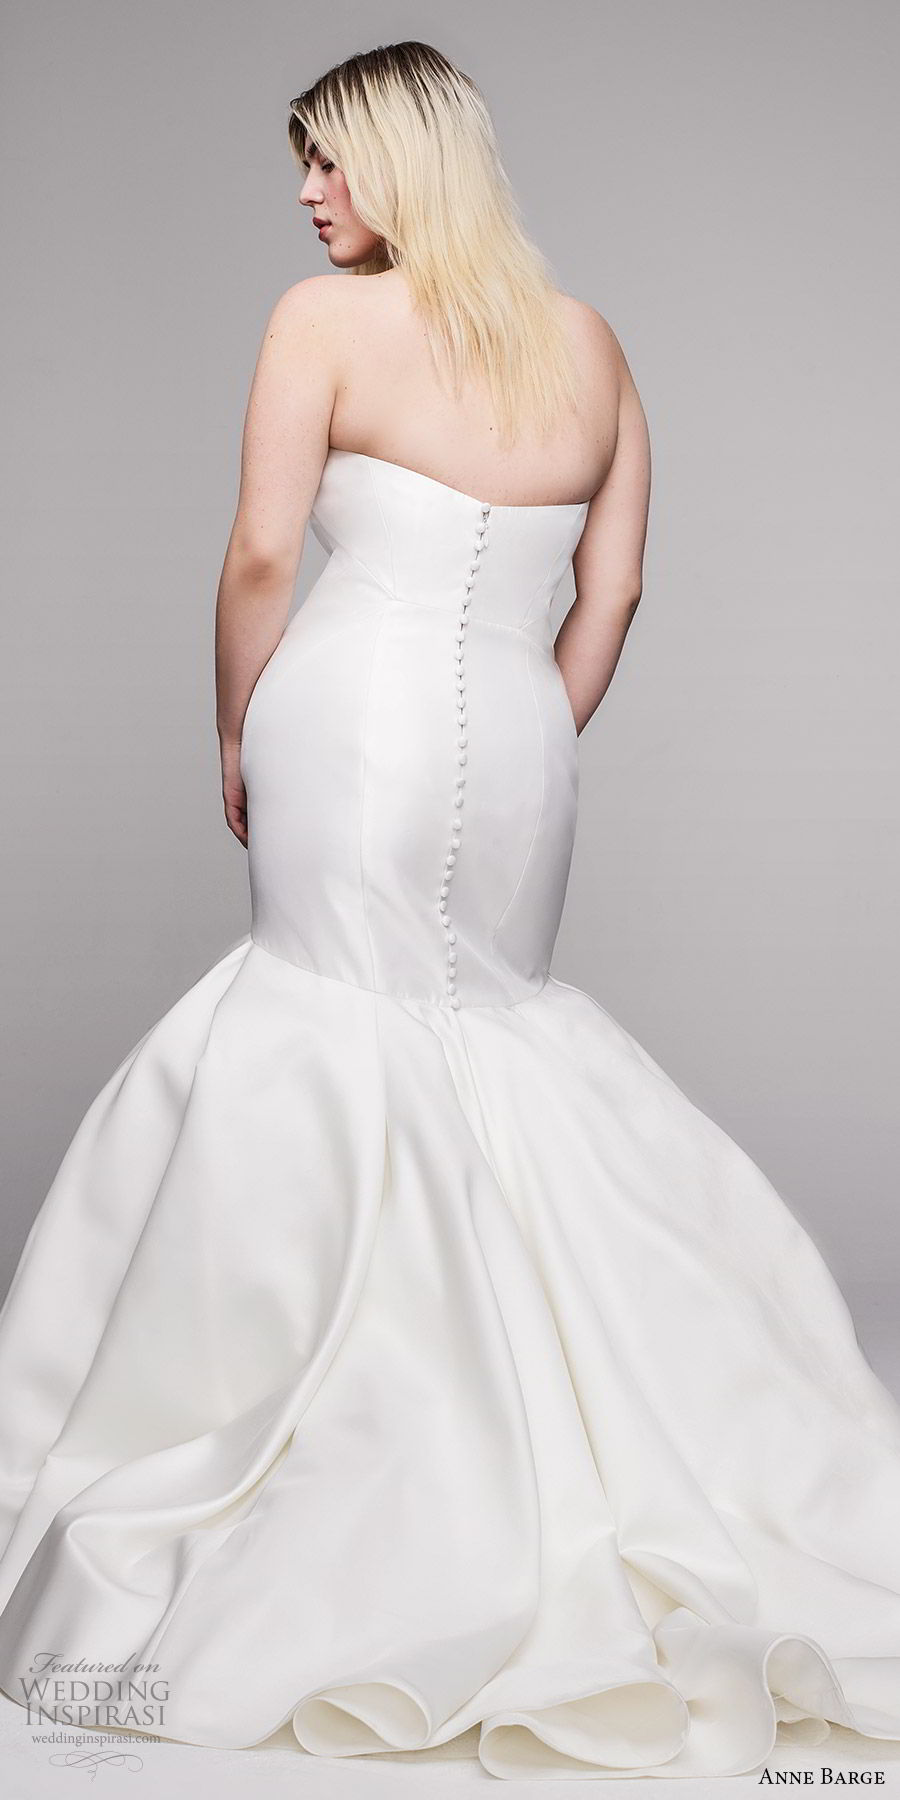 anne barge 2020 bridal plus size strapless sweetheart fit flare mermaid wedding dress (1) clean minimal modern chapel train bv